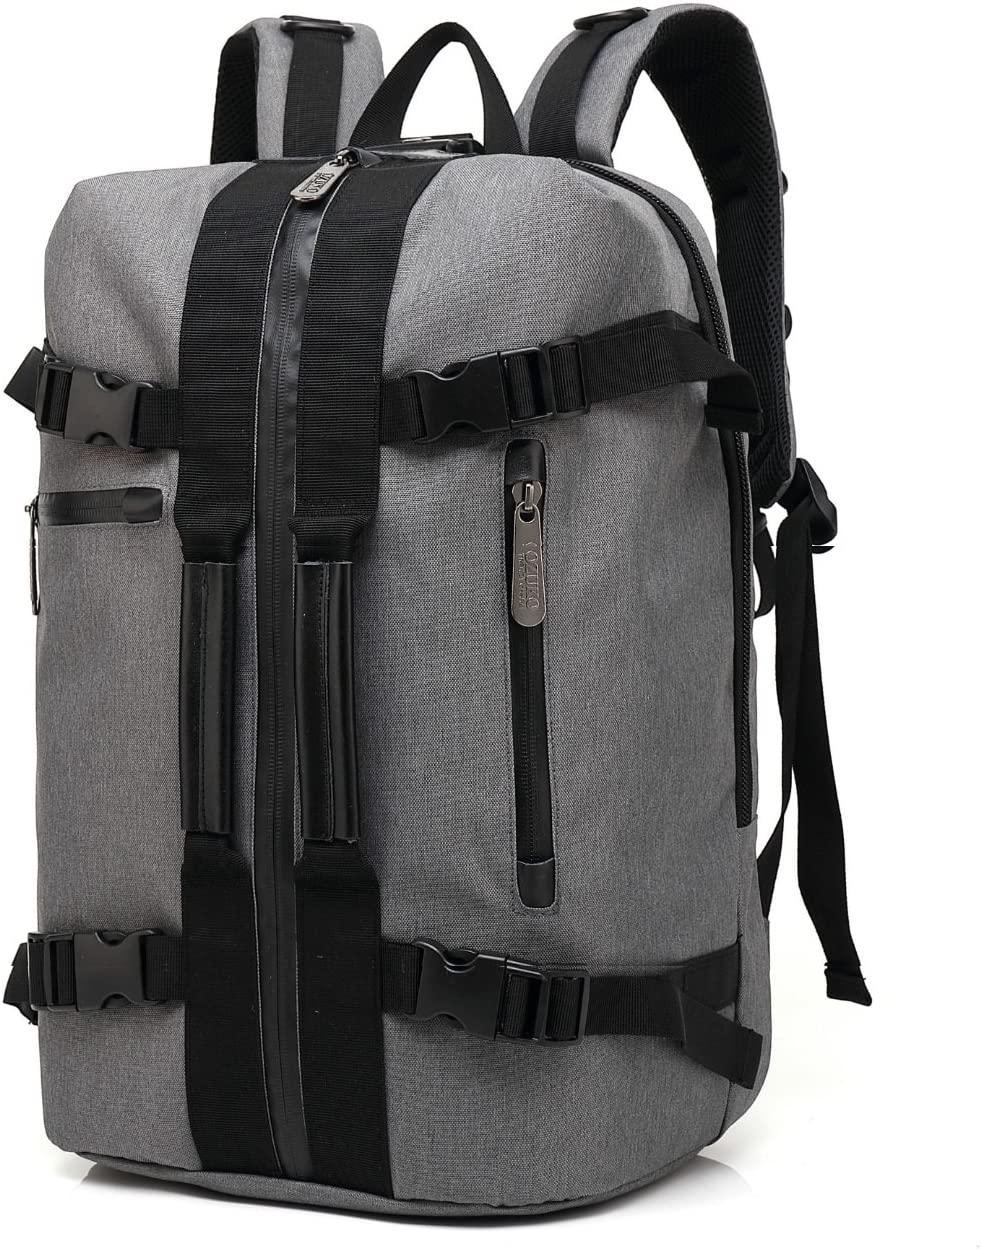 OZUKO Multi functional Travel Backpack Outdoor Camping